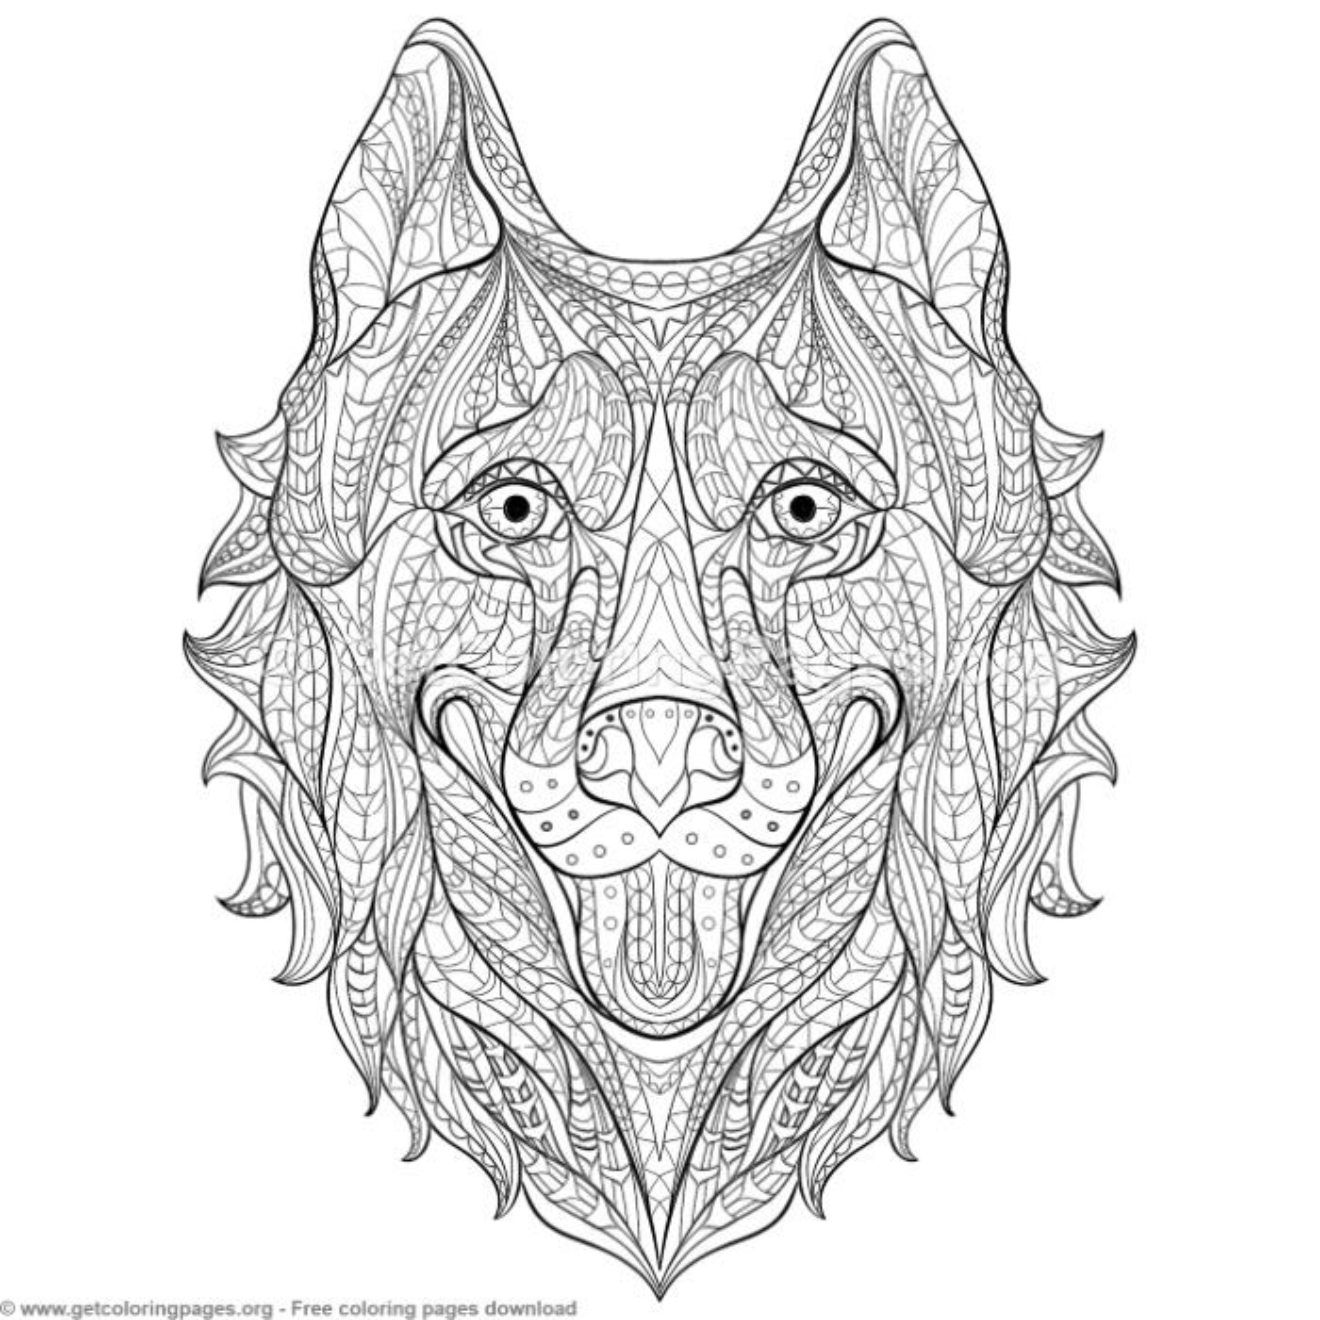 Patterned Zentangle Husky Coloring Pages Getcoloringpages Org Zentangle Animals Coloring Pages Zentangle